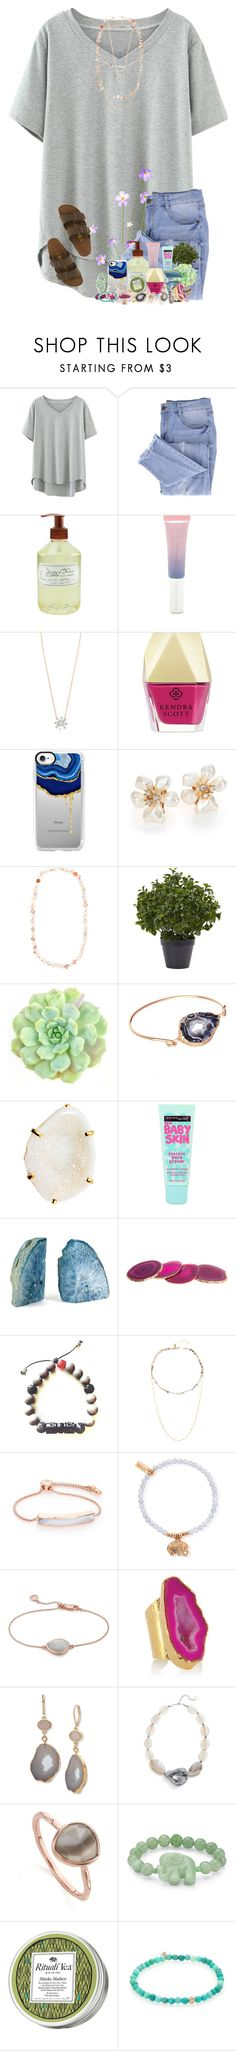 """i NEED a bubble bath"" by livnewell ❤ liked on Polyvore featuring Essie, Library of Flowers, Forever 21, Adina Reyter, Kendra Scott, Casetify, Kenneth Jay Lane, Bagatelle, Nearly Natural and WALL"